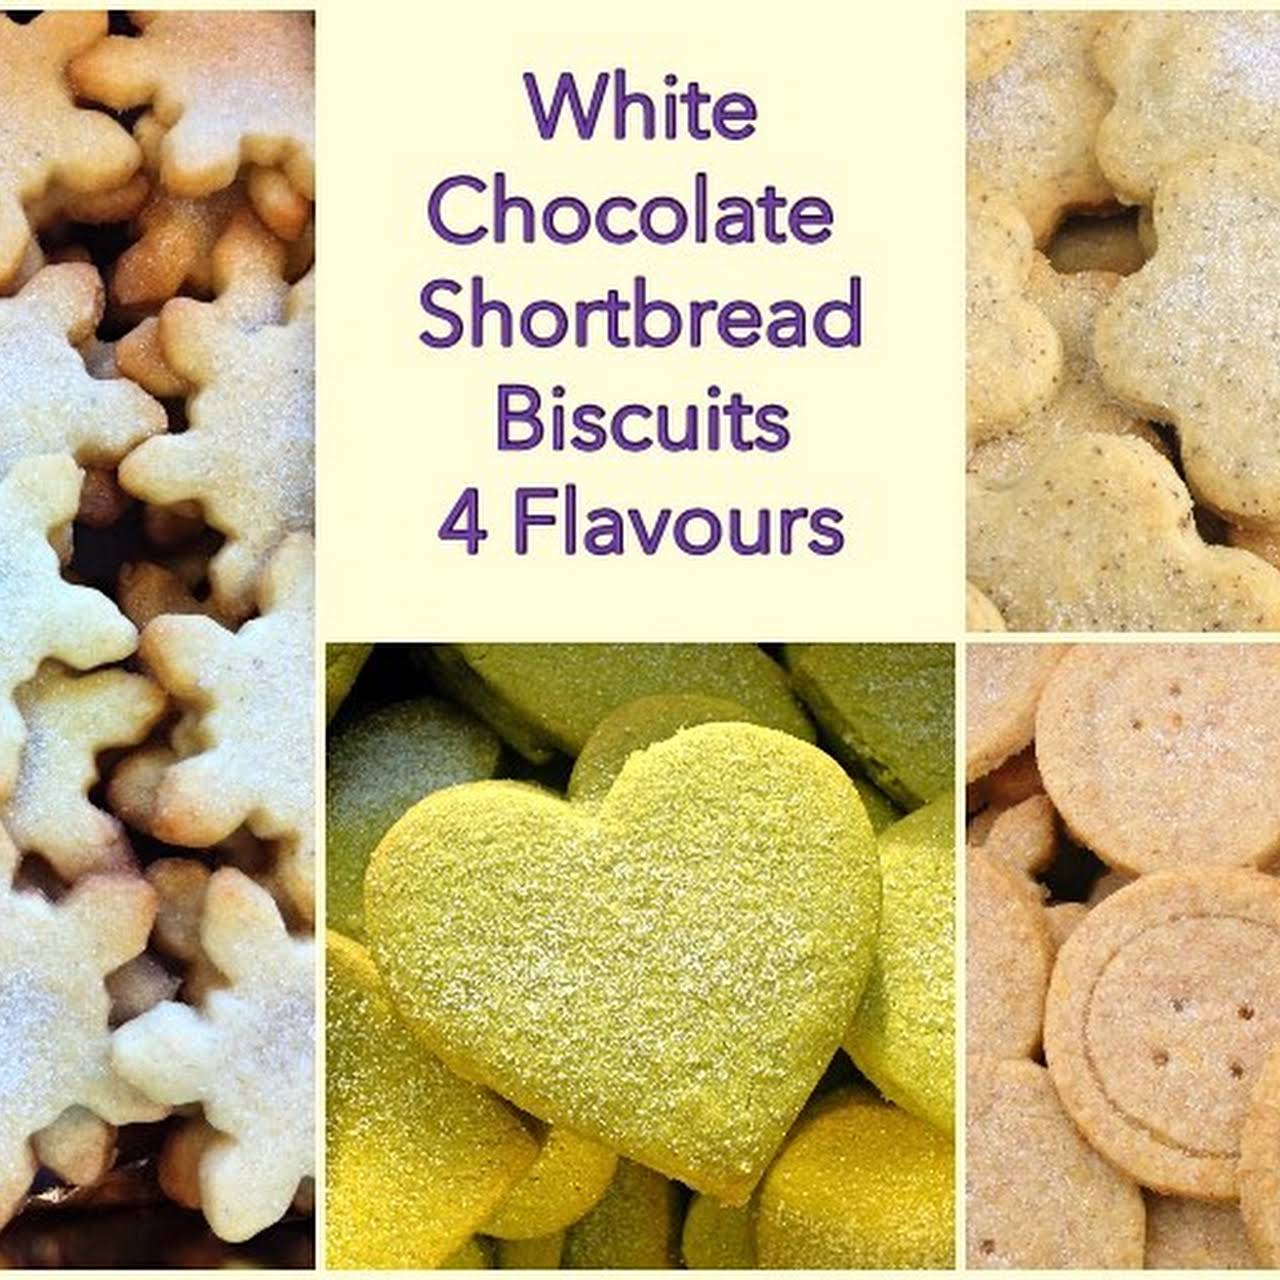 White Chocolate Shortbread Biscuits